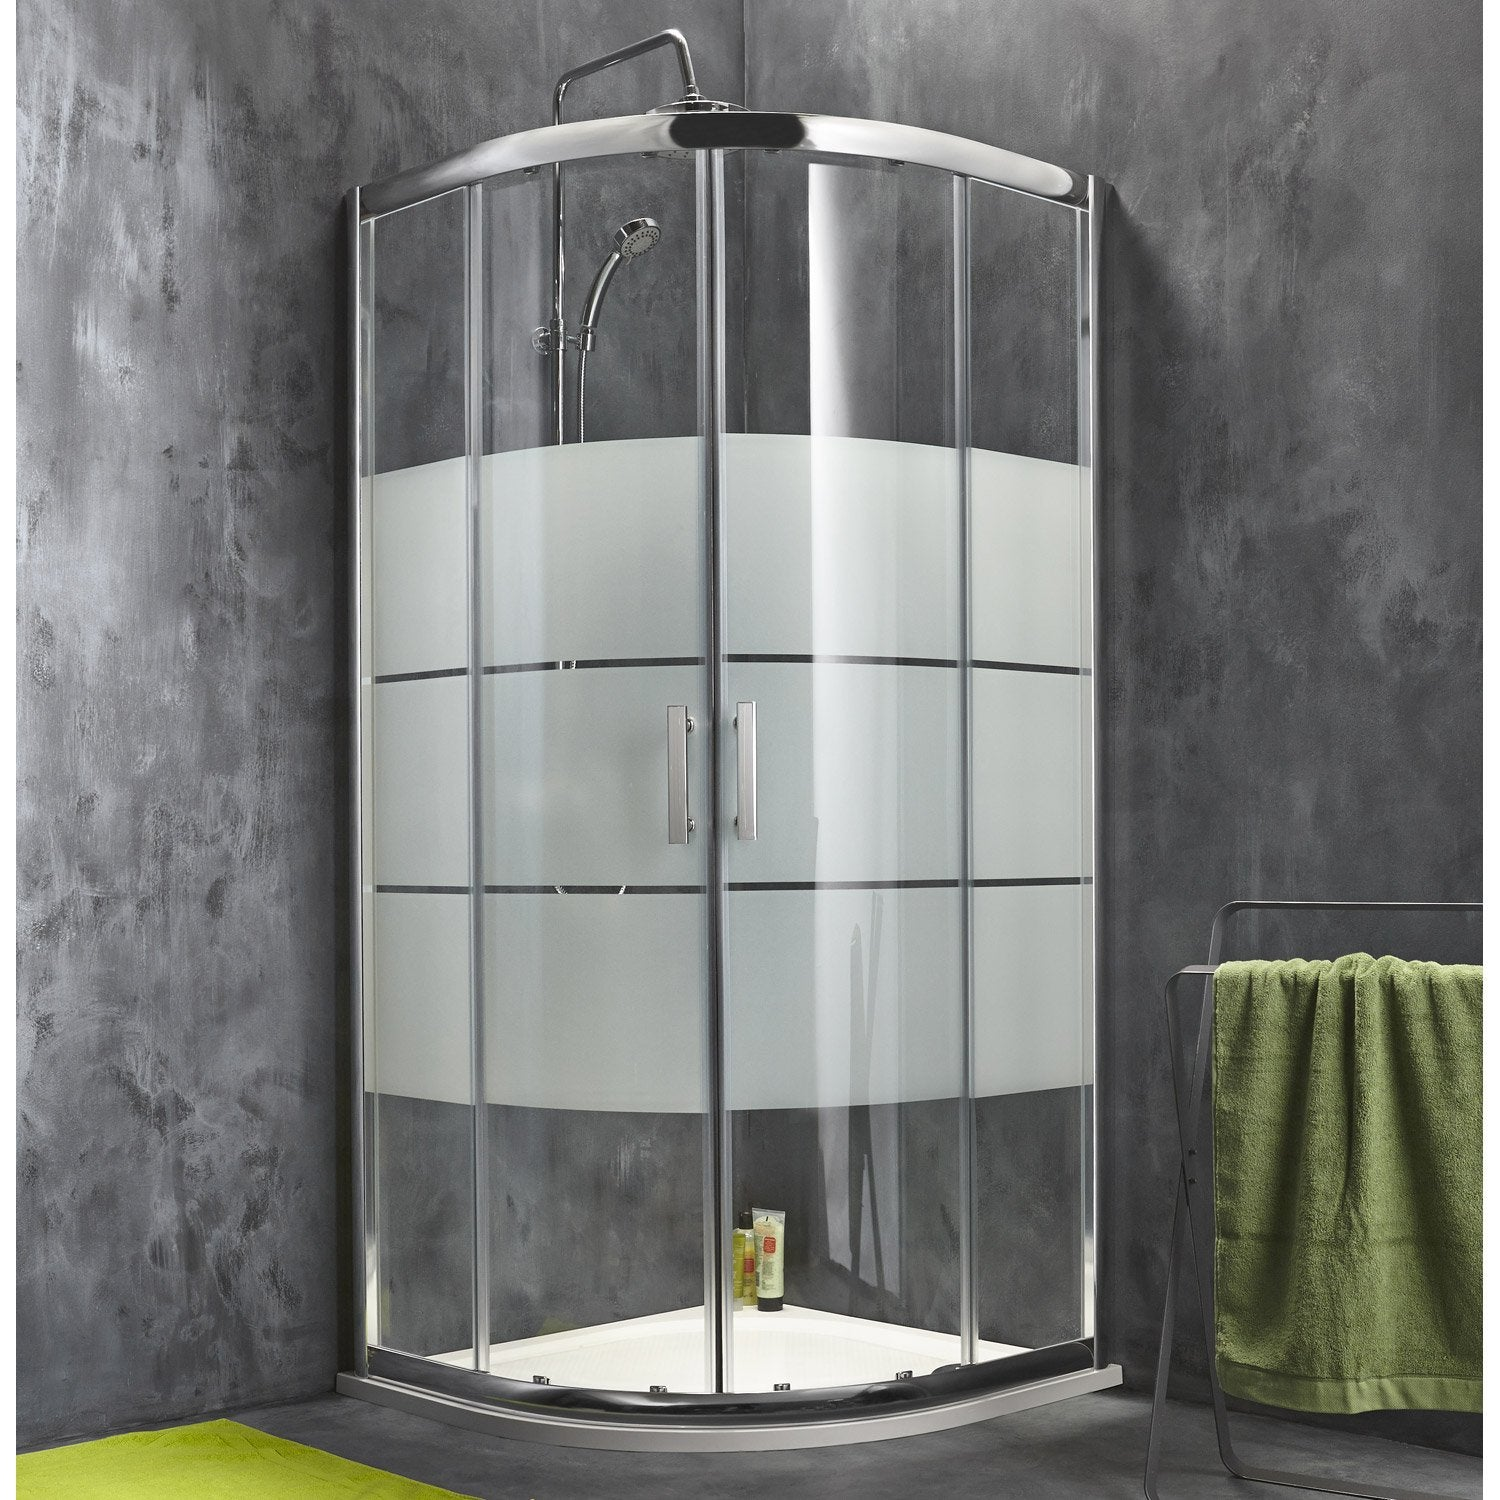 Porte de douche coulissante sensea optima 2 verre for Porte de douche leroy merlin